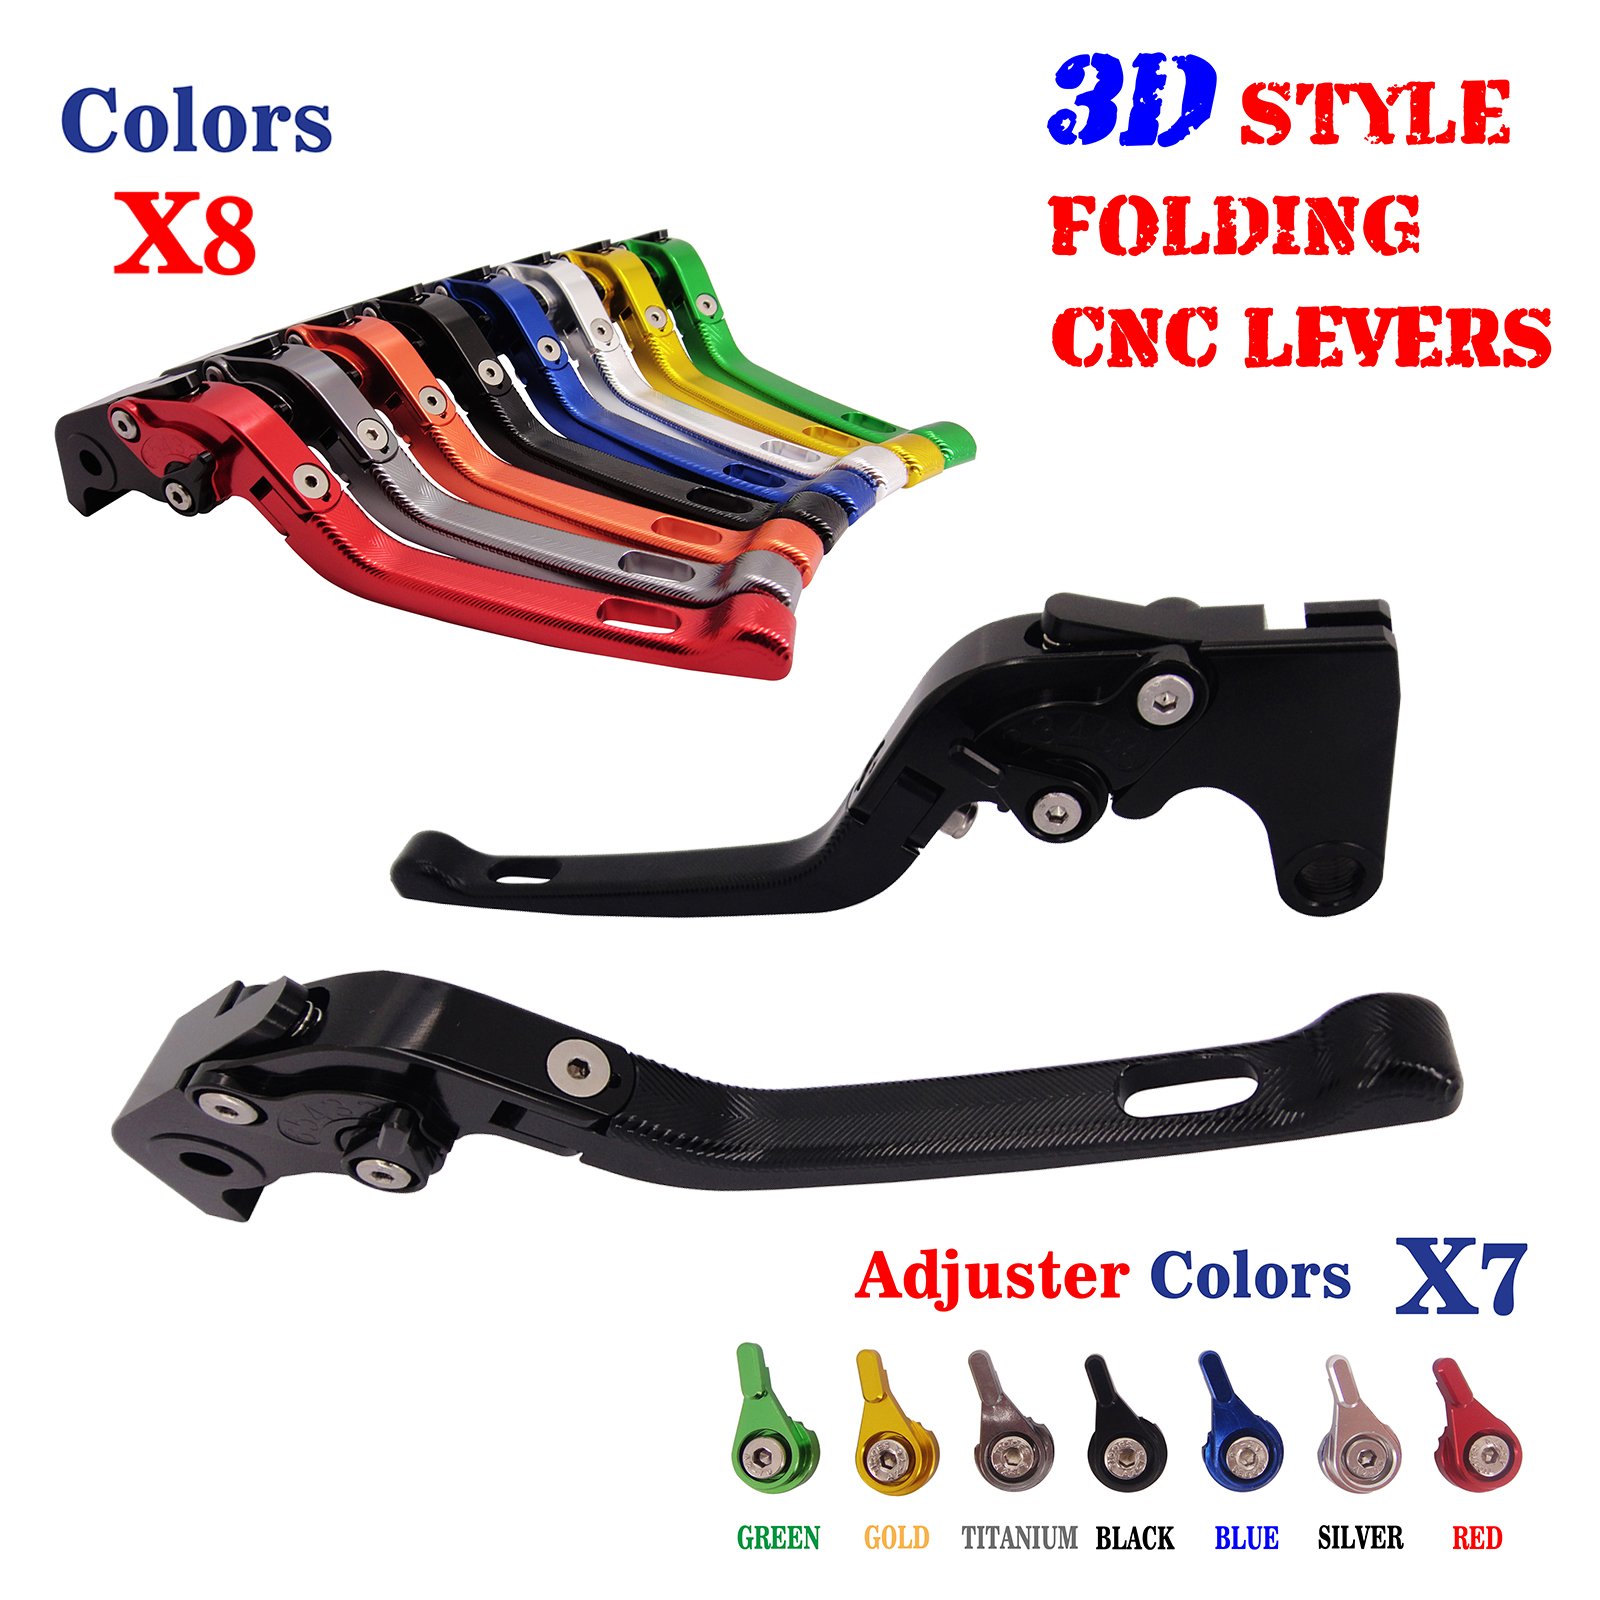 Adjustable CNC 3D Feel Folding Brake Clutch Levers For Honda VFR750 CB1300SF/SB/ST VFR800 F 2002-2015 bosch gsb 18 2 li